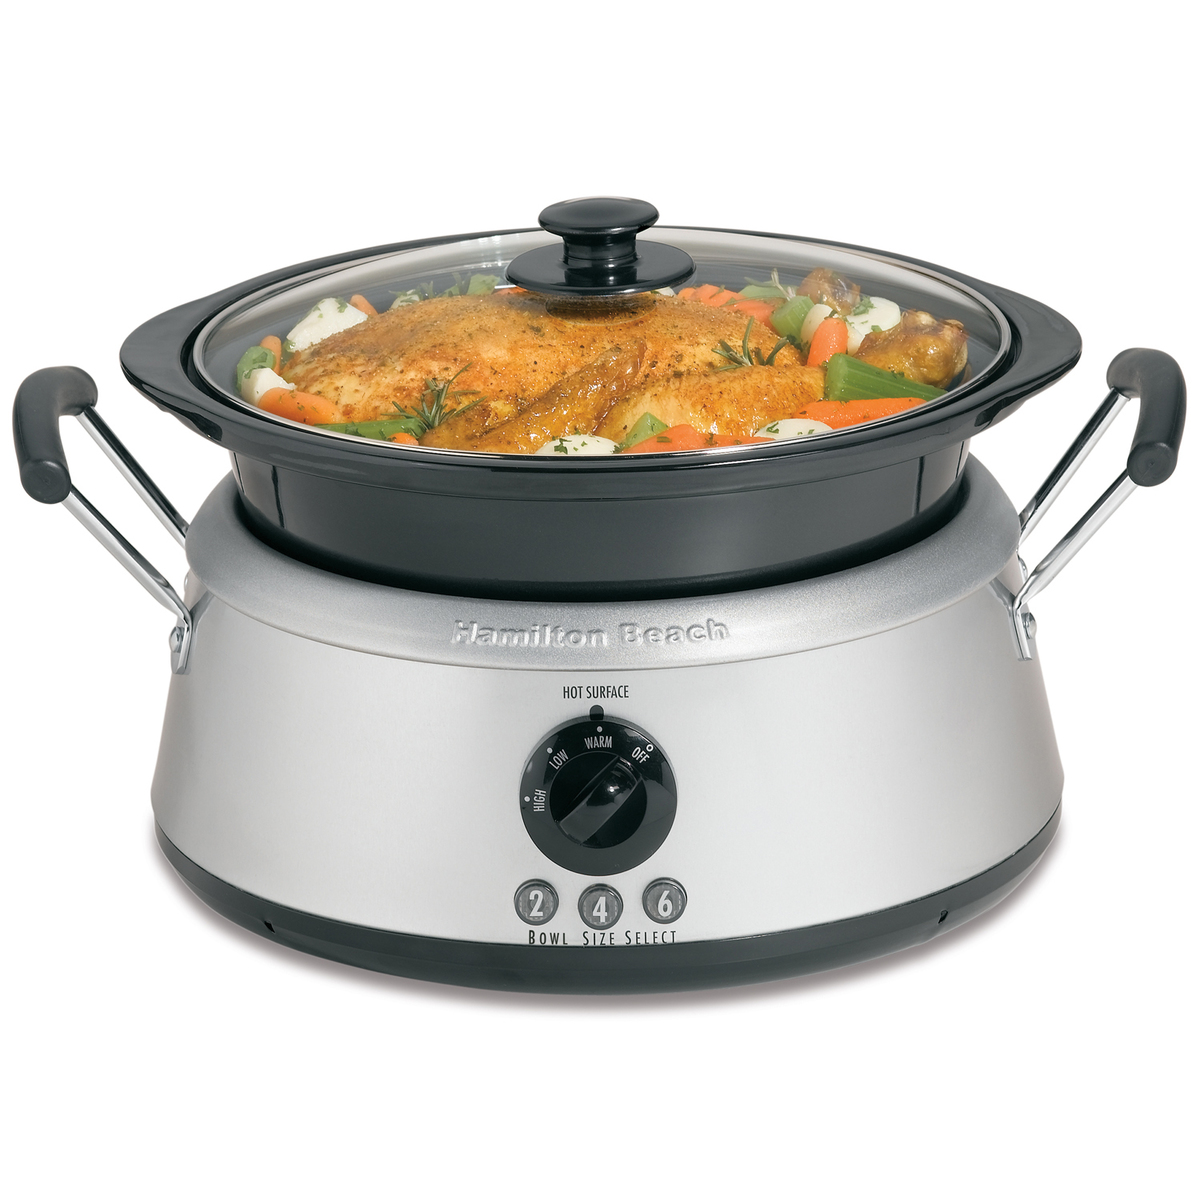 3-in-One Slow Cooker (33135)